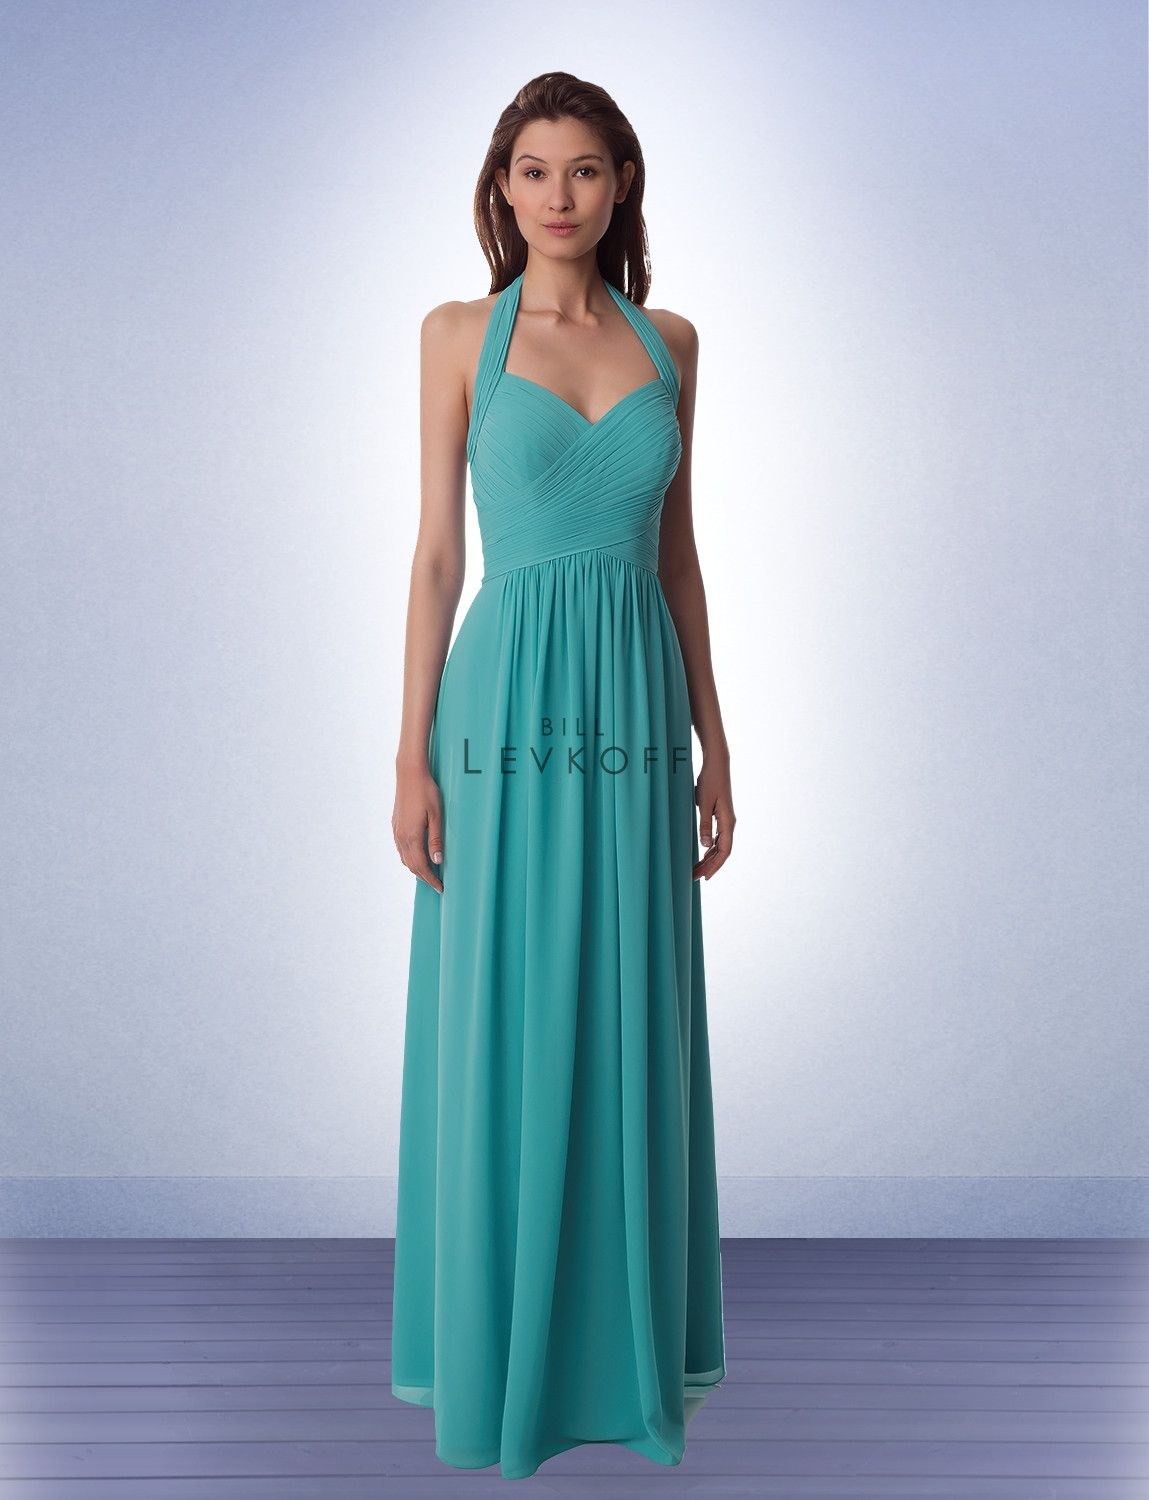 Bridesmaid dress style 990 bridesmaid dresses by bill levkoff at bridesmaid dress style 990 bridesmaid dresses by bill levkoff at hopes bridal ombrellifo Image collections